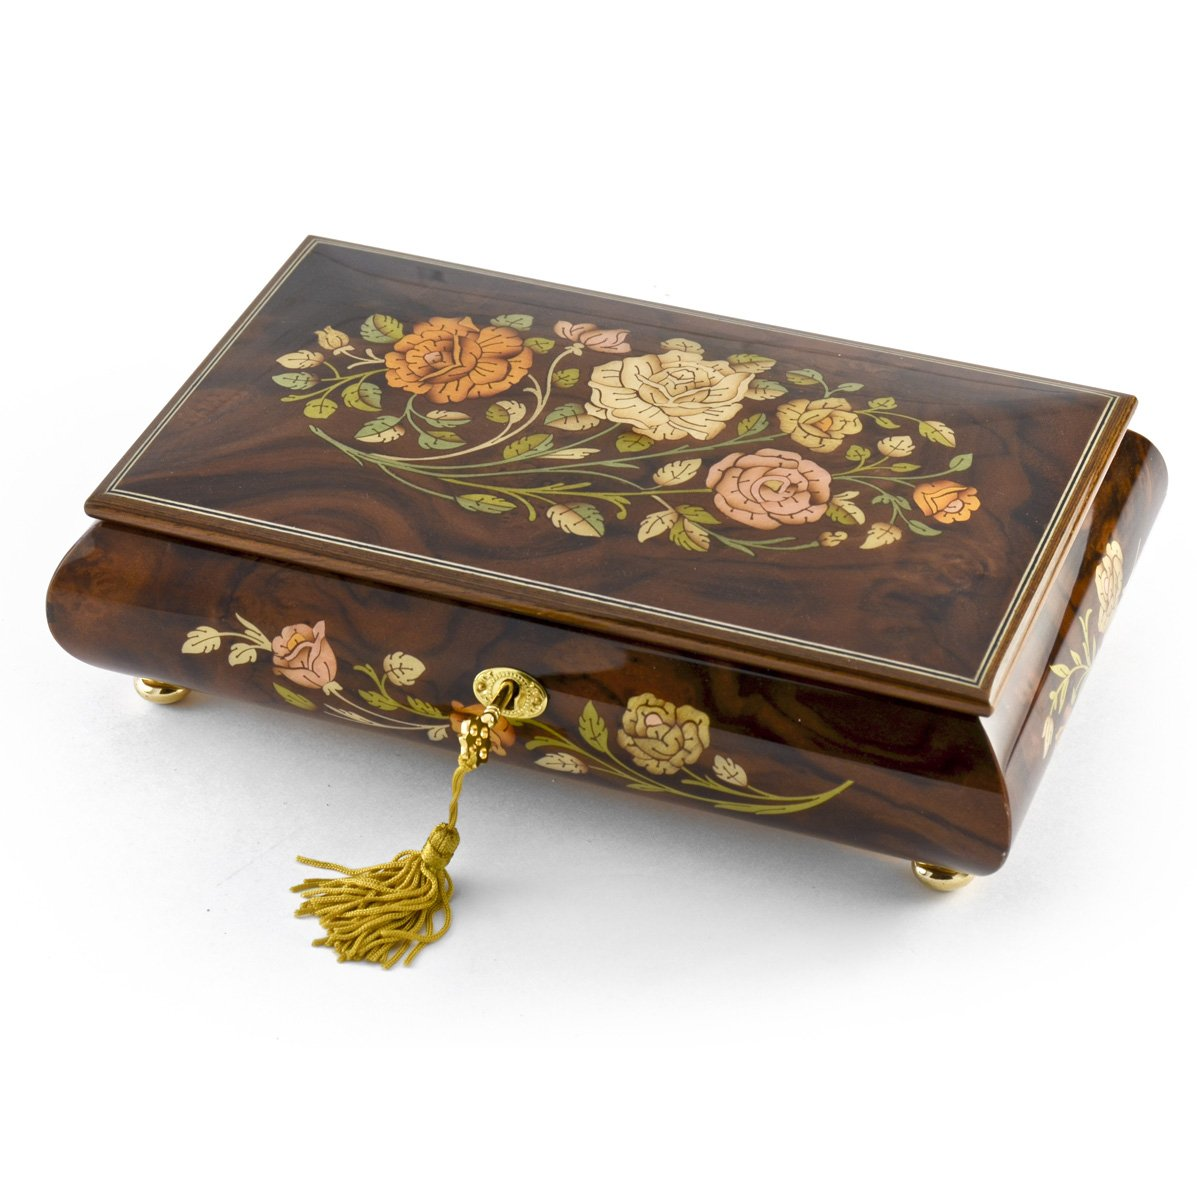 Handcrafted Walnut 18 Note Roses Inlay Musical Jewelry Box with Lock and Key - Love Story (Love Story the Movie)